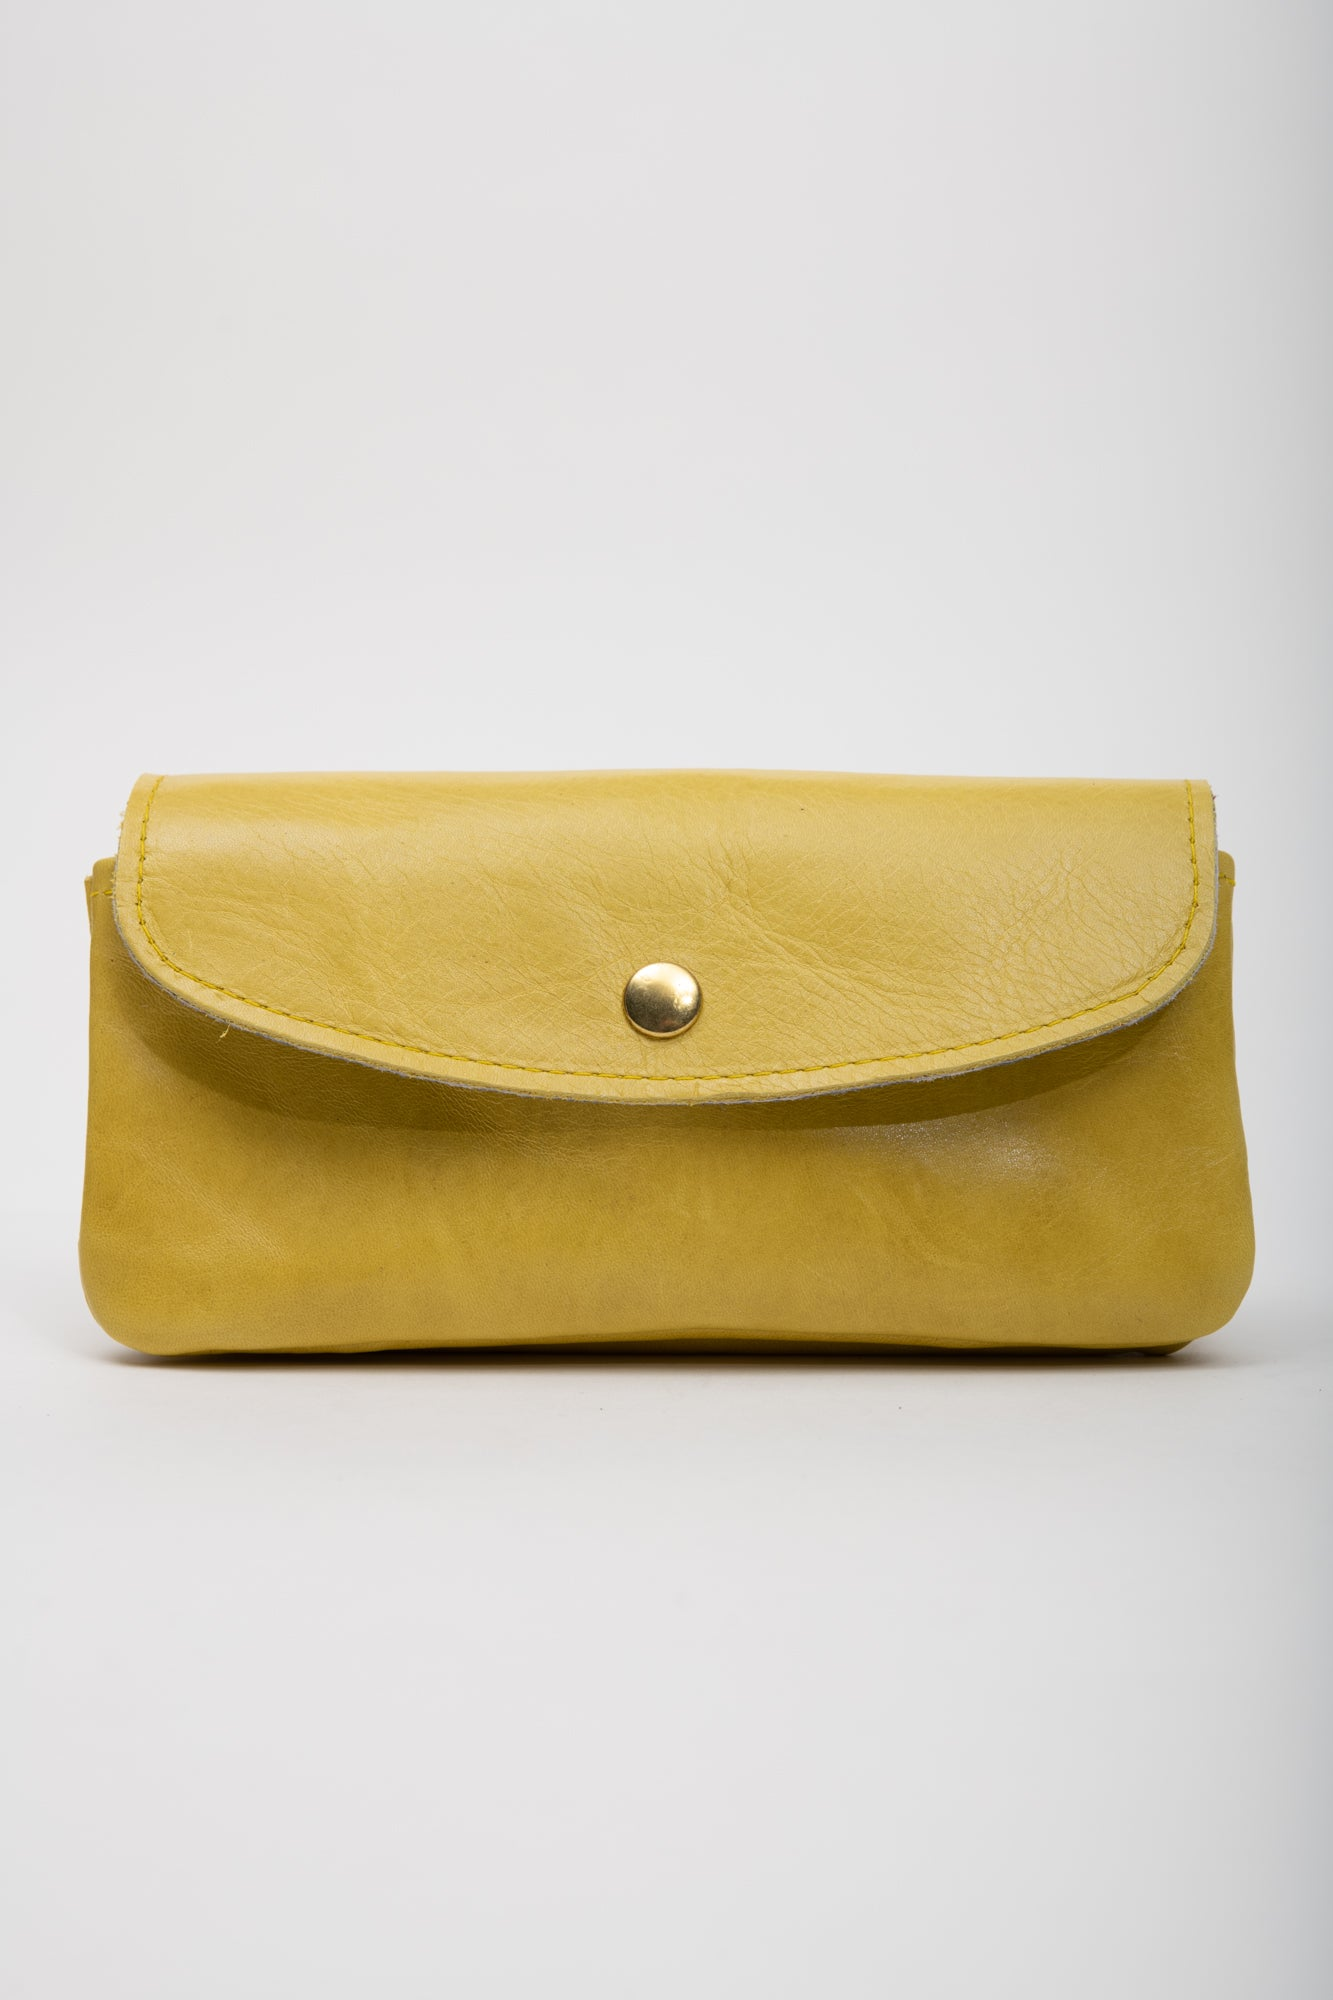 Veinage Minimalist yellow leather wallet MARQUETTE model